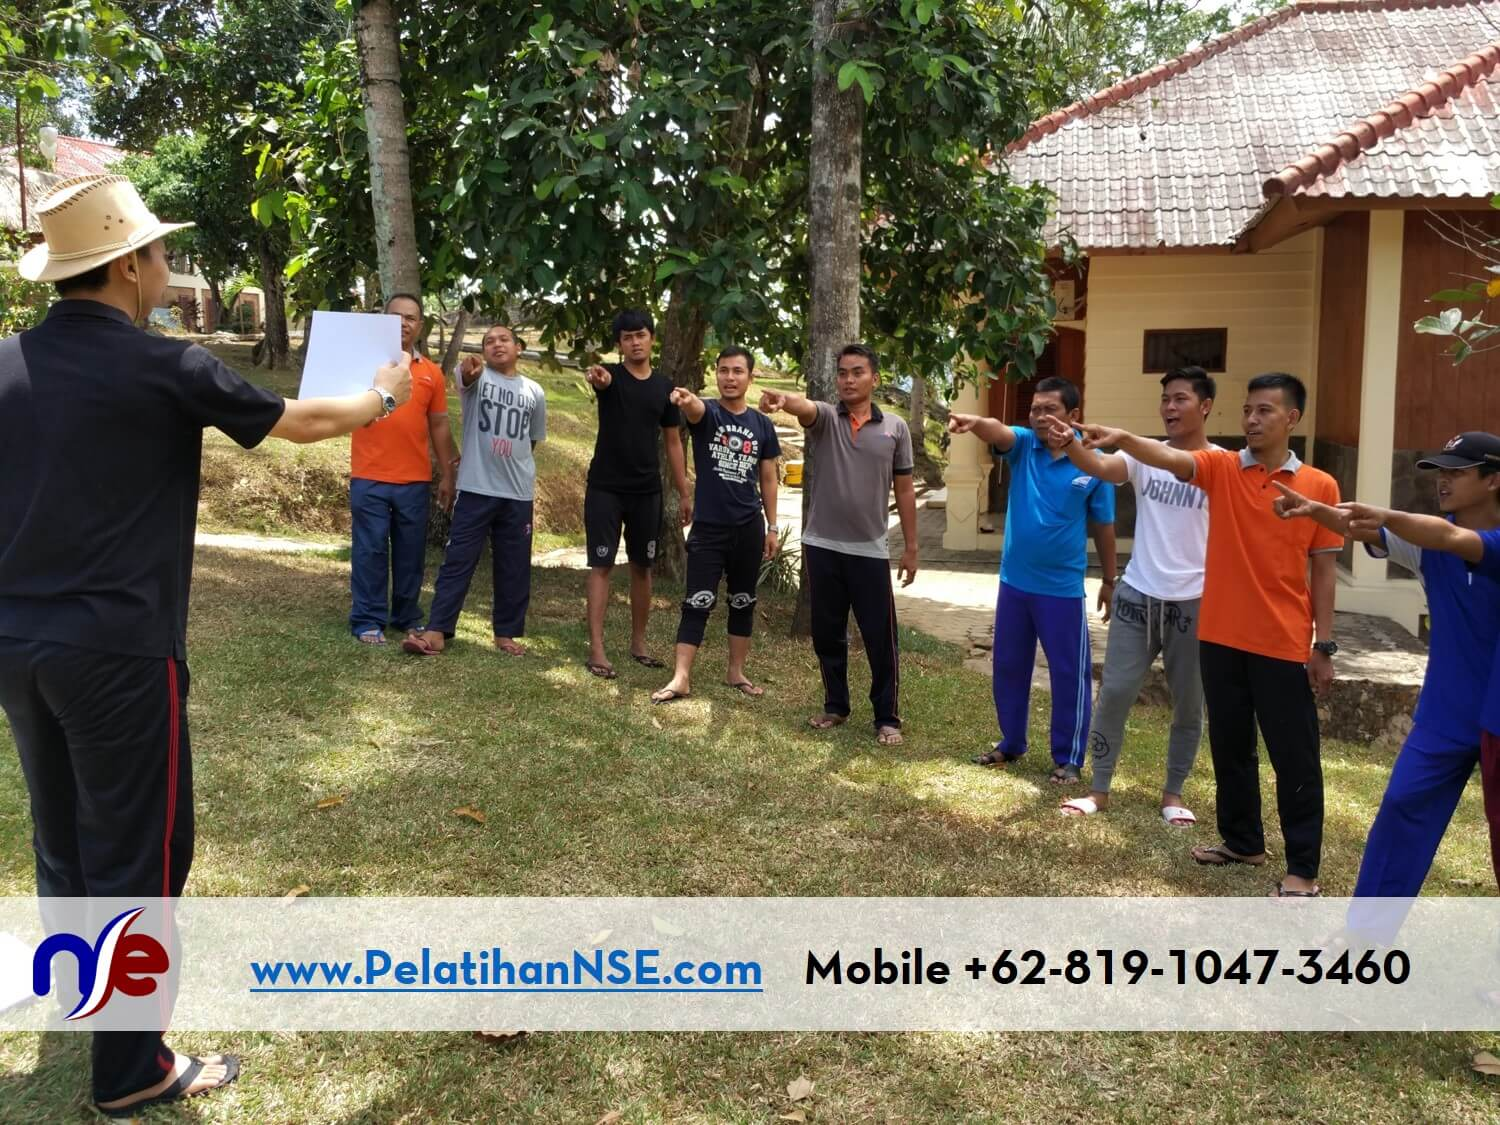 NSE Basic Self Empowerment KAI 16-17 September 2016 - Games Tunjuk Sebut Semboyan